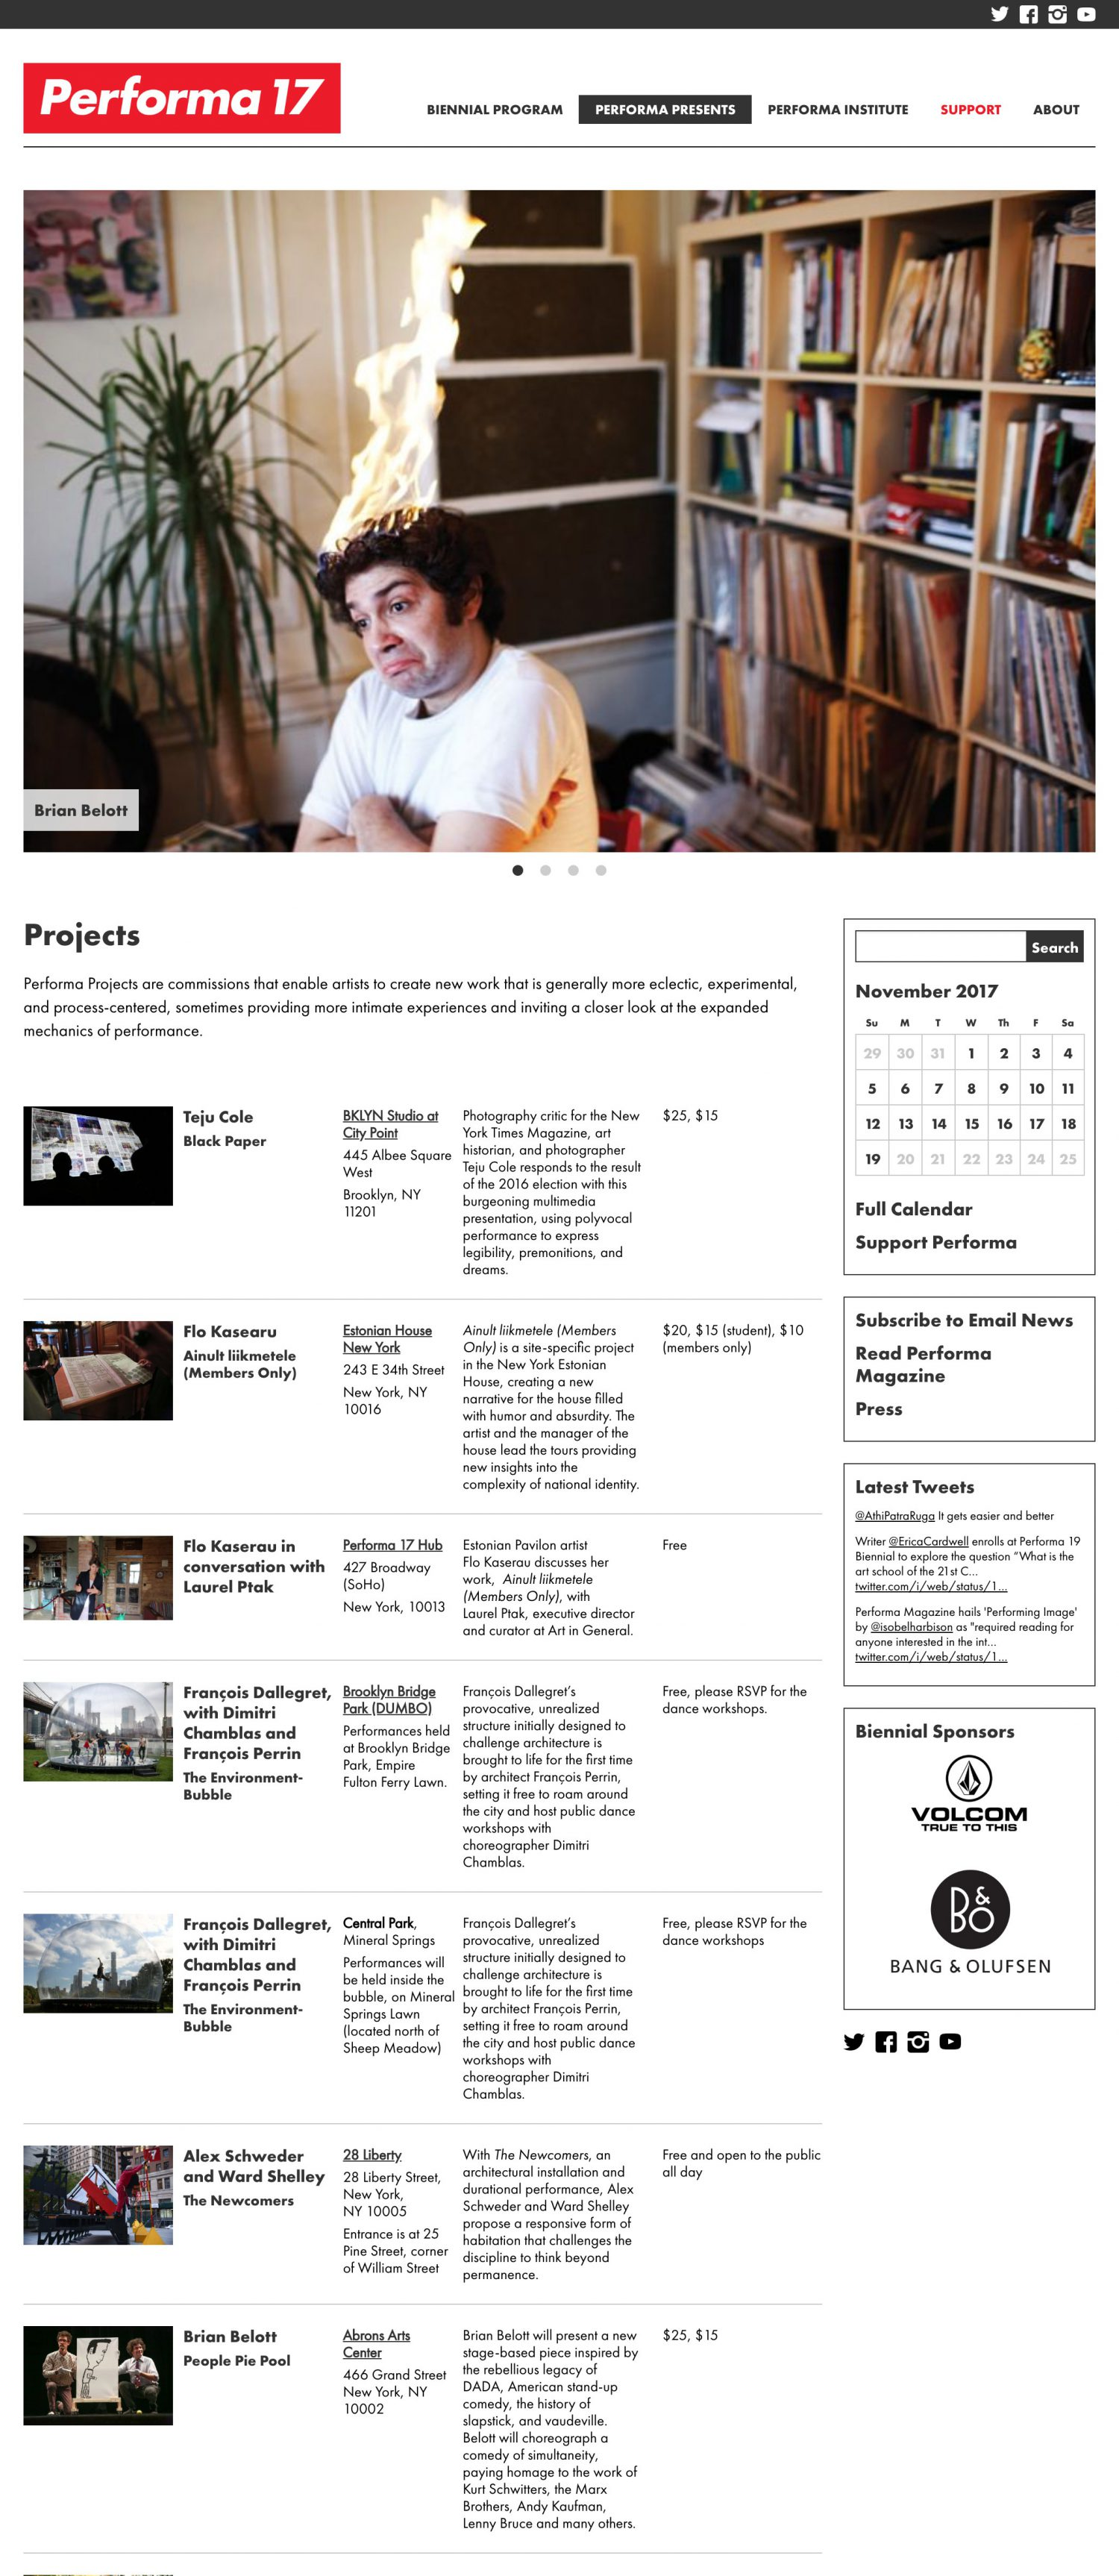 Screenshot of the Performa 17 website's projects page